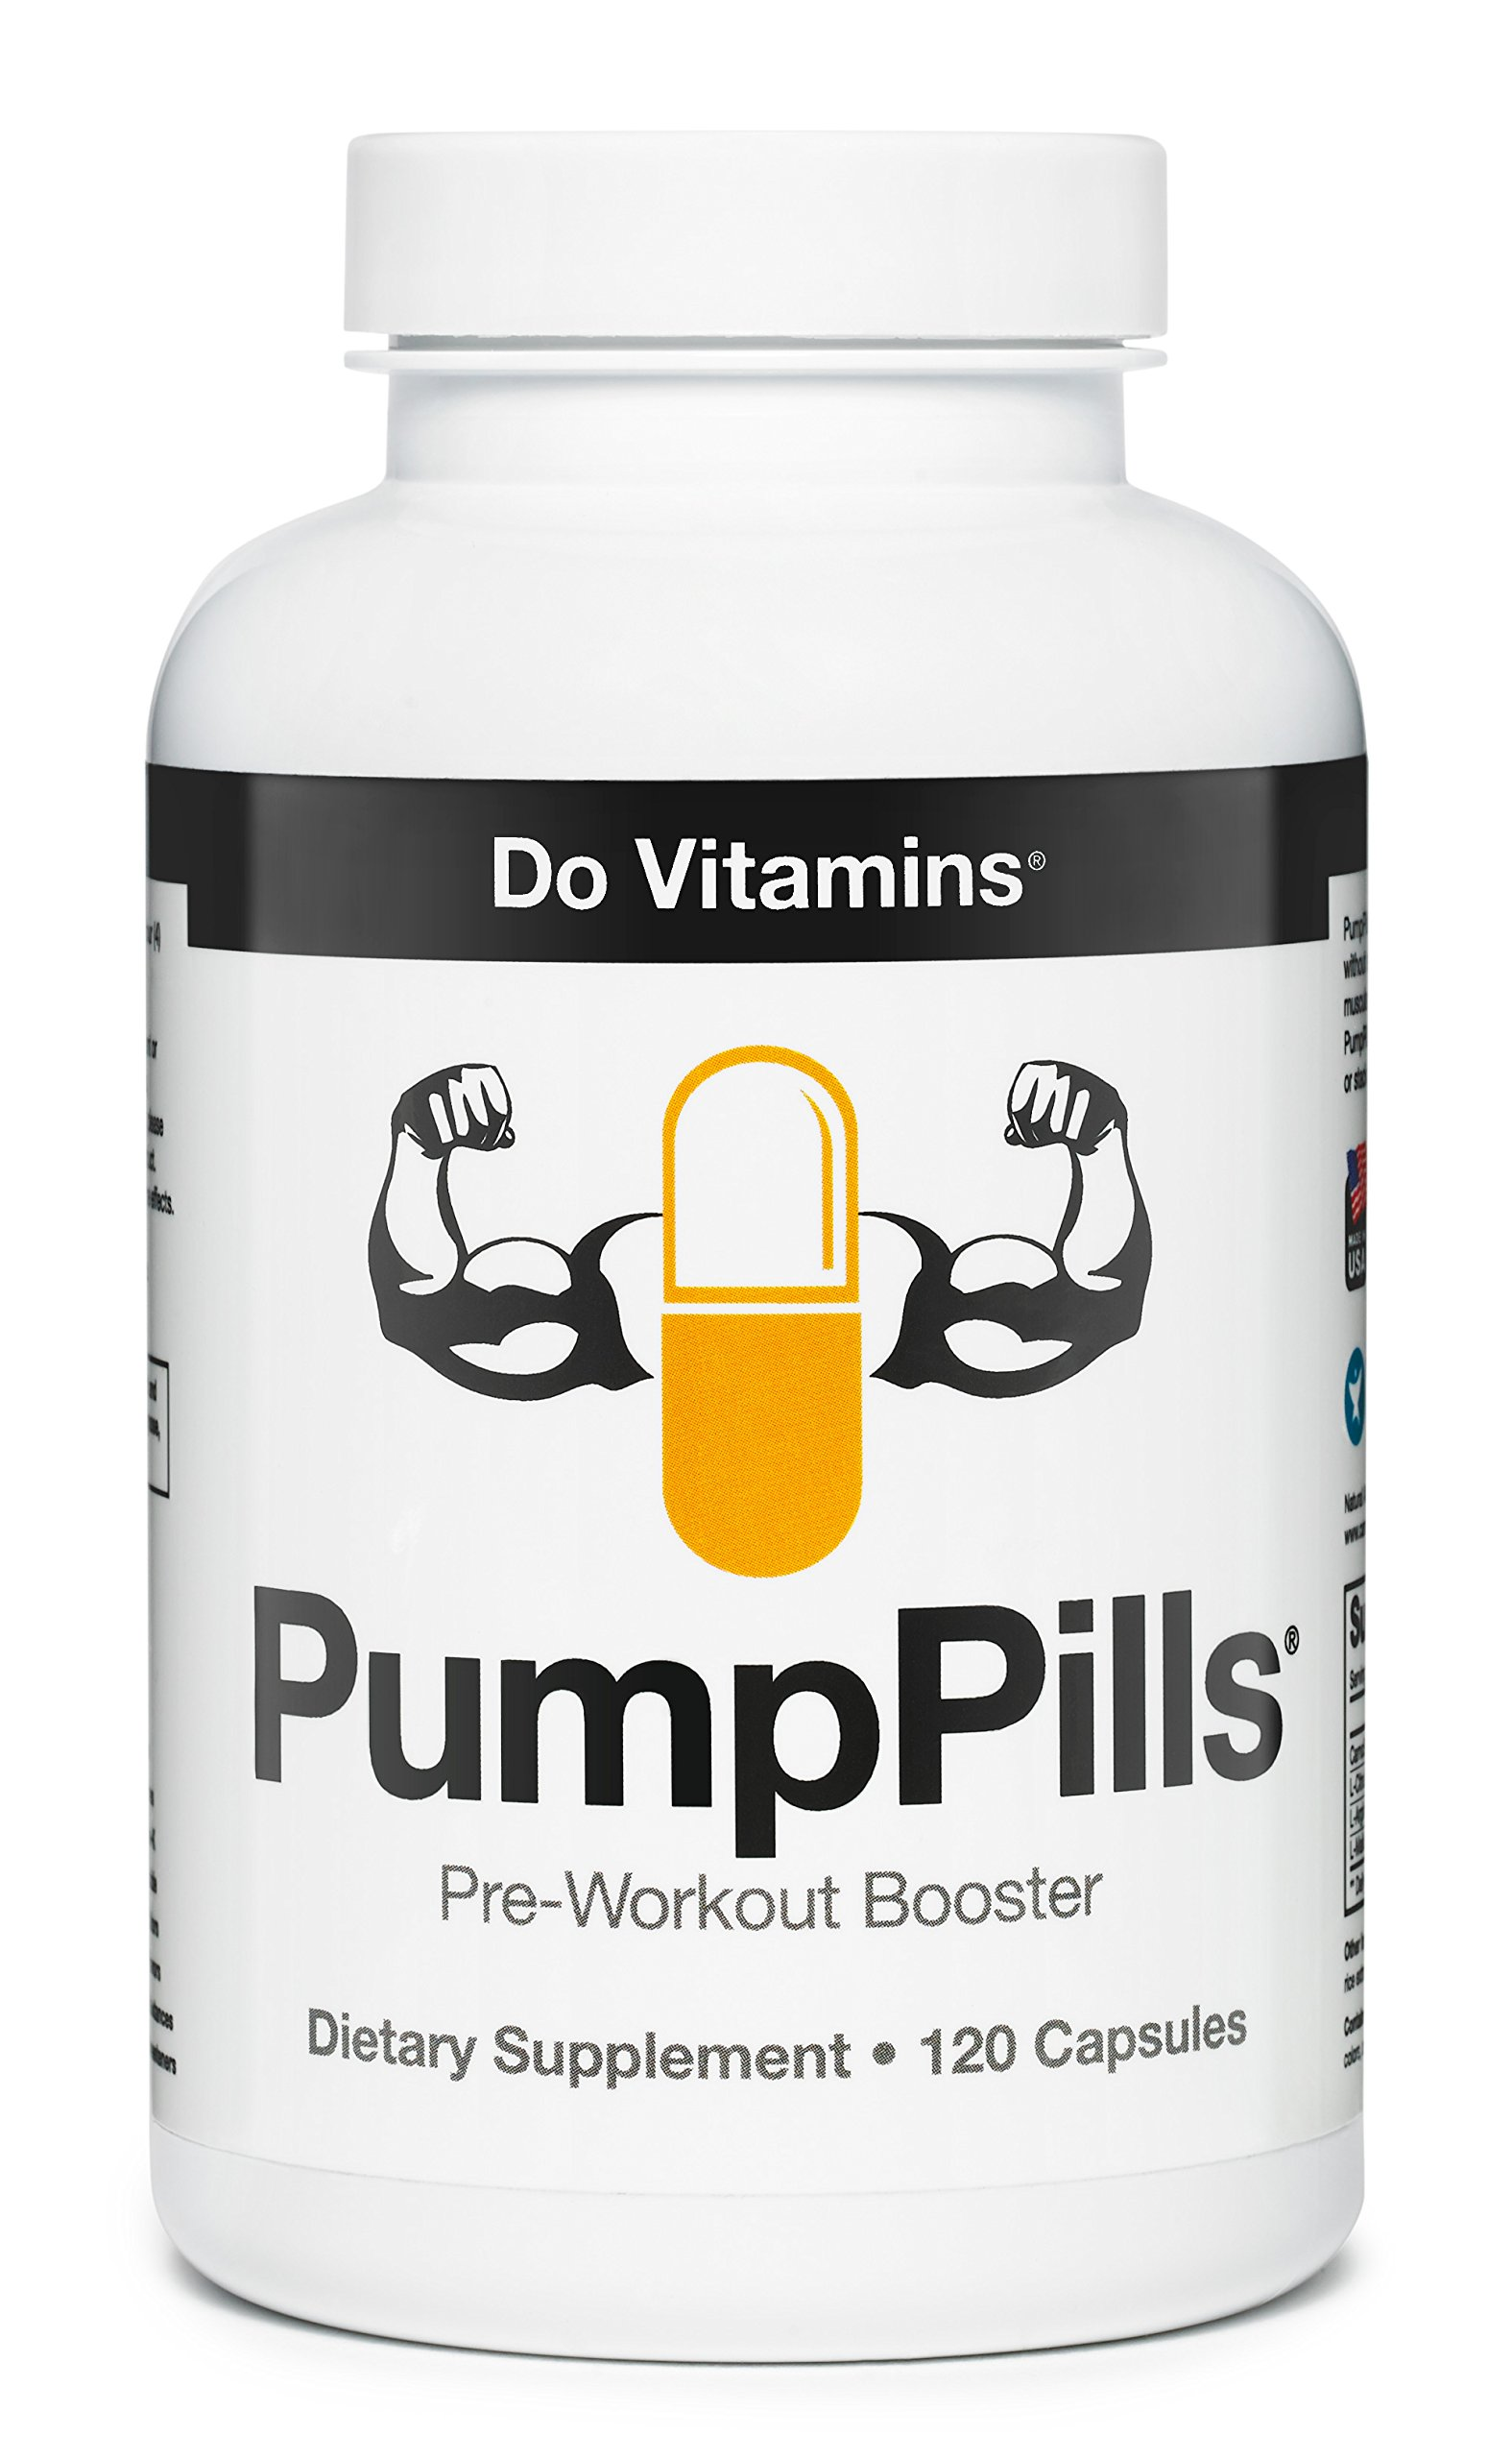 PumpPills Nitric Oxide Supplements For Men & Women - L Citrulline L Arginine Supplement - Stimulant Free Pre Workout Pills - Nitric Oxide Booster - Vegan, Paleo, Keto (120 Capsules) by Do Vitamins